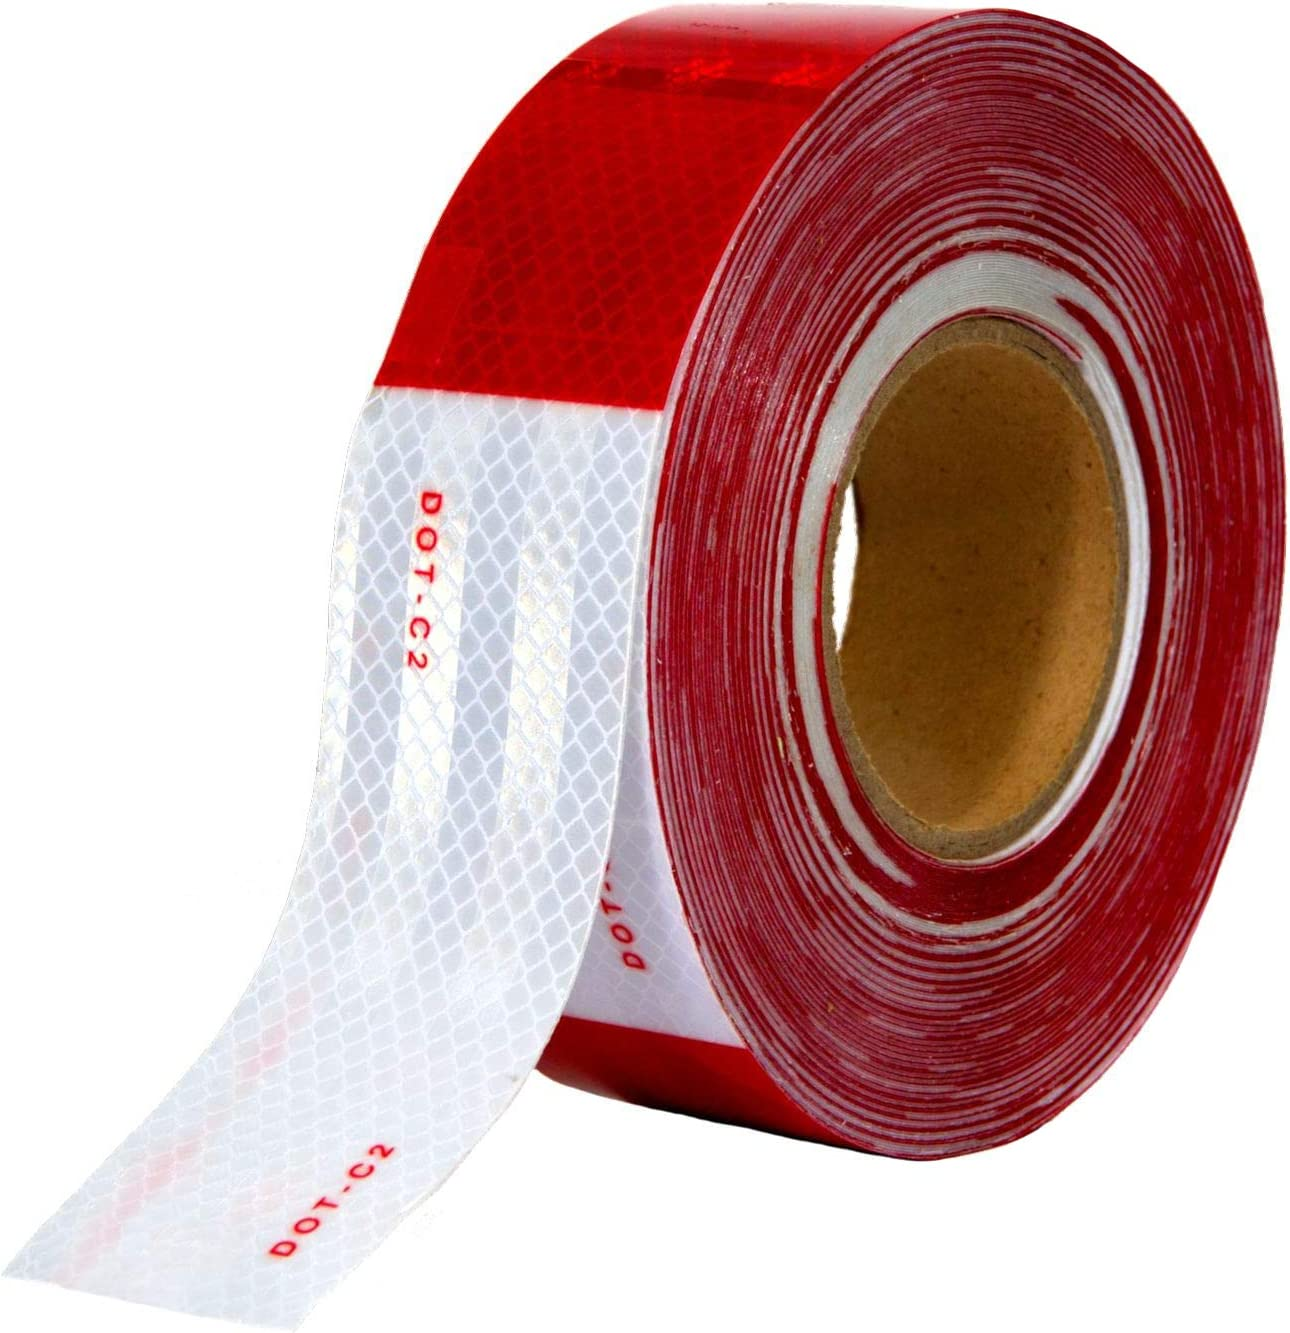 Trucks 5.8 x 2 in ZYHW Red White Reflector Tape for Trailer 20Pcs,Universal Plastic Rectangular Waterproof Warning Plate Reflective Sticker Self-Adhesive for Cars Signs Boats